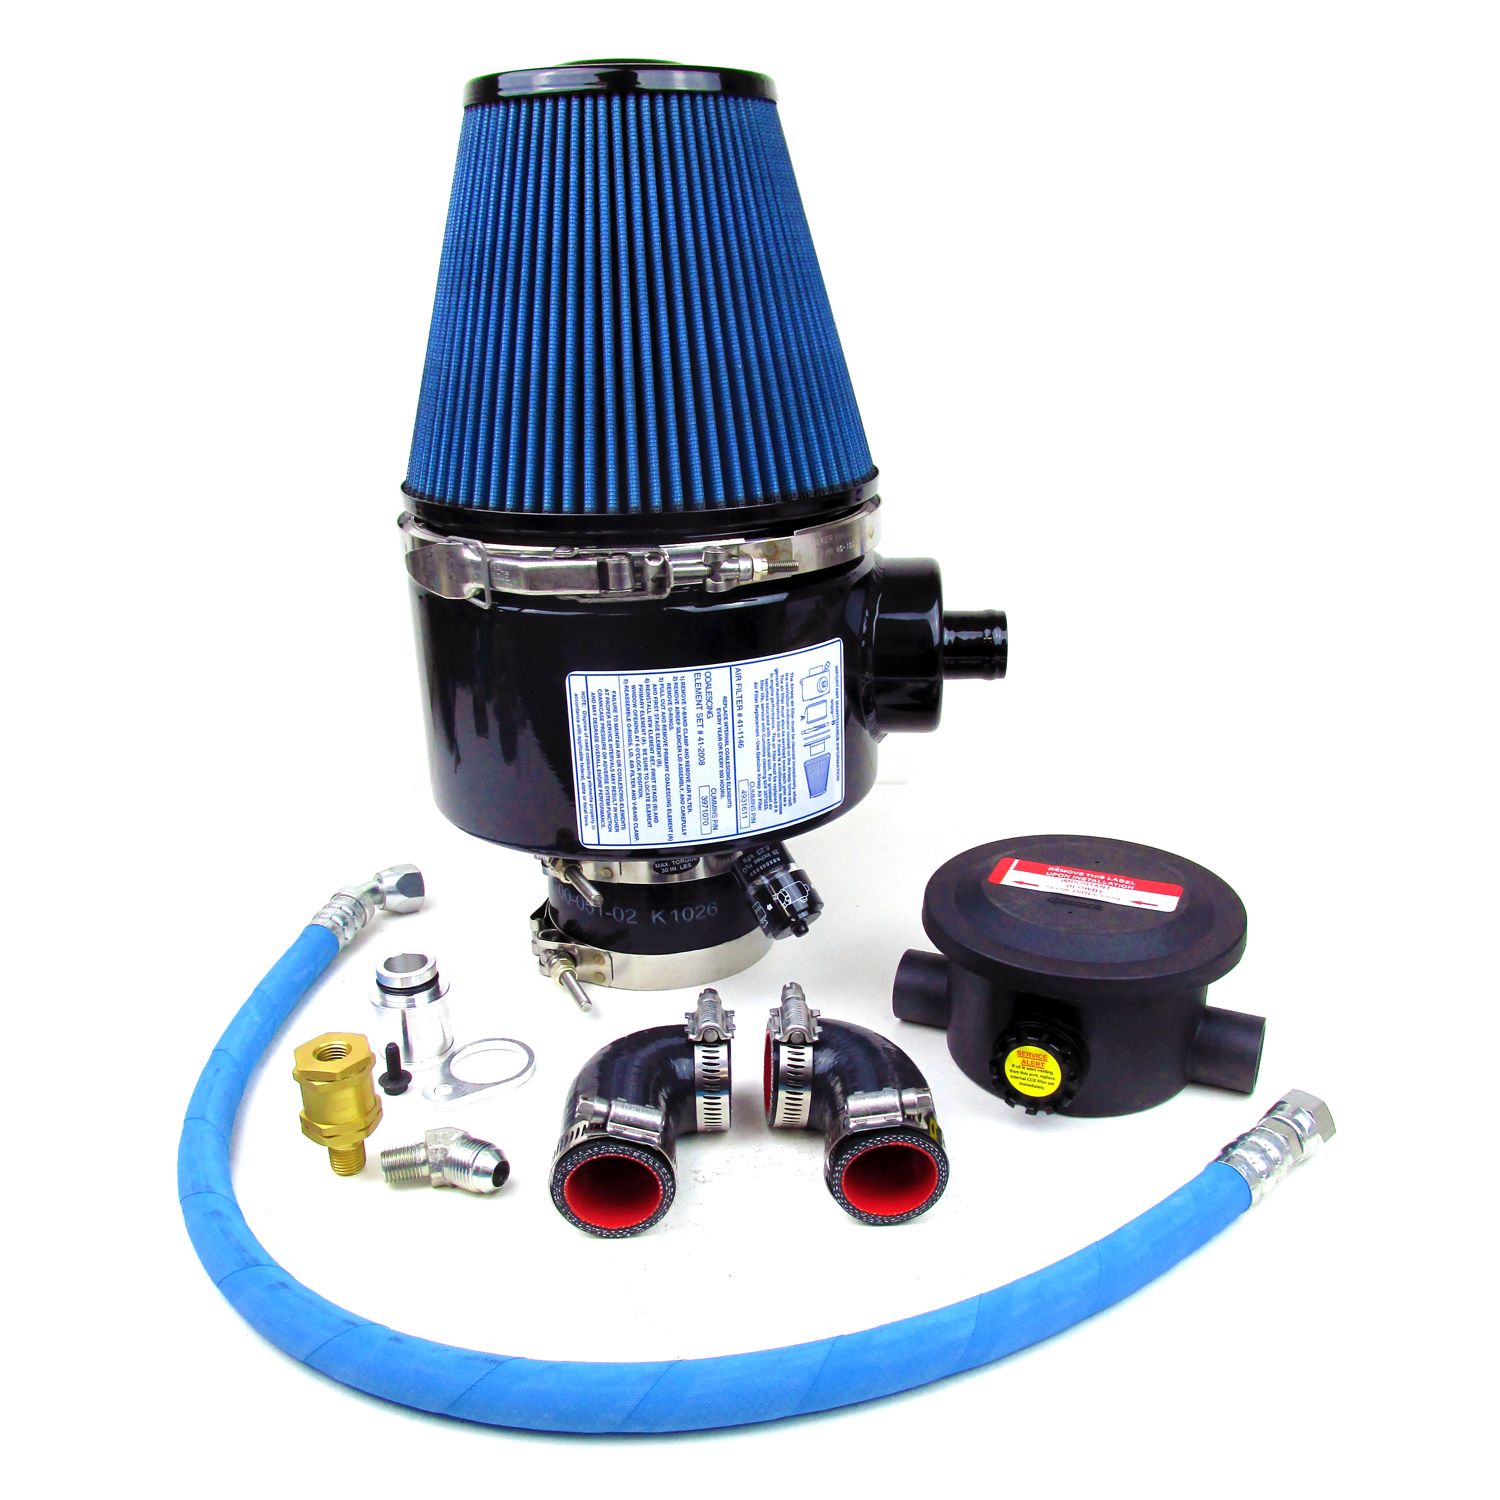 Boat Air Filters : Qsb walker airsep air filter kit seaboard marine